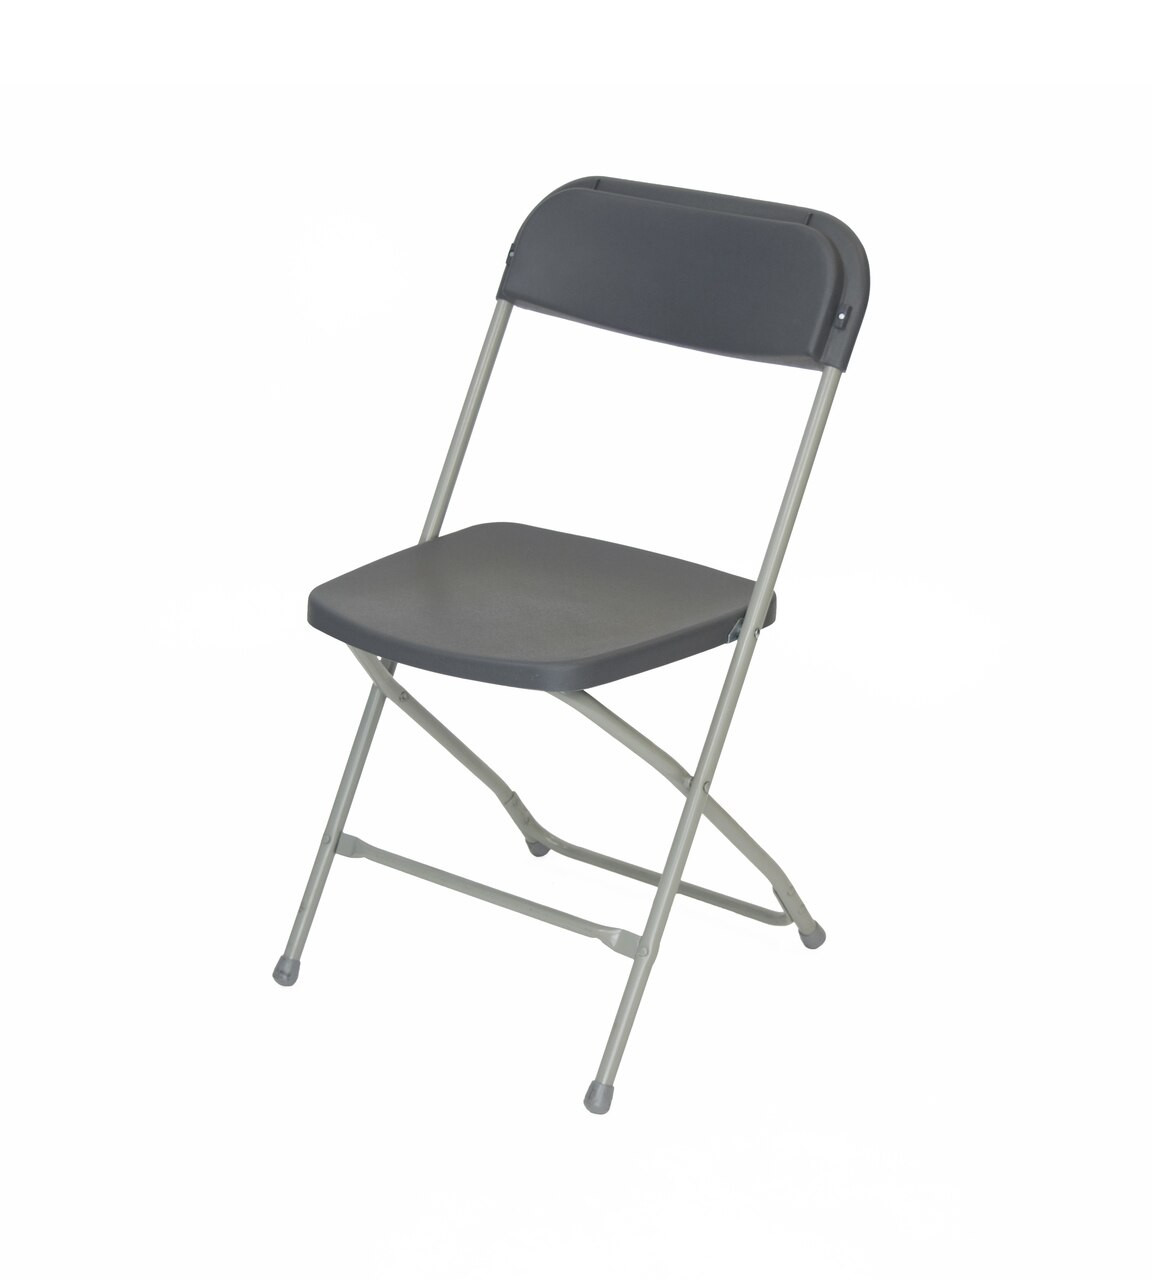 Astonishing Titan Plastic Folding Chair Premium Rental Style 730Lb Capacity Squirreltailoven Fun Painted Chair Ideas Images Squirreltailovenorg